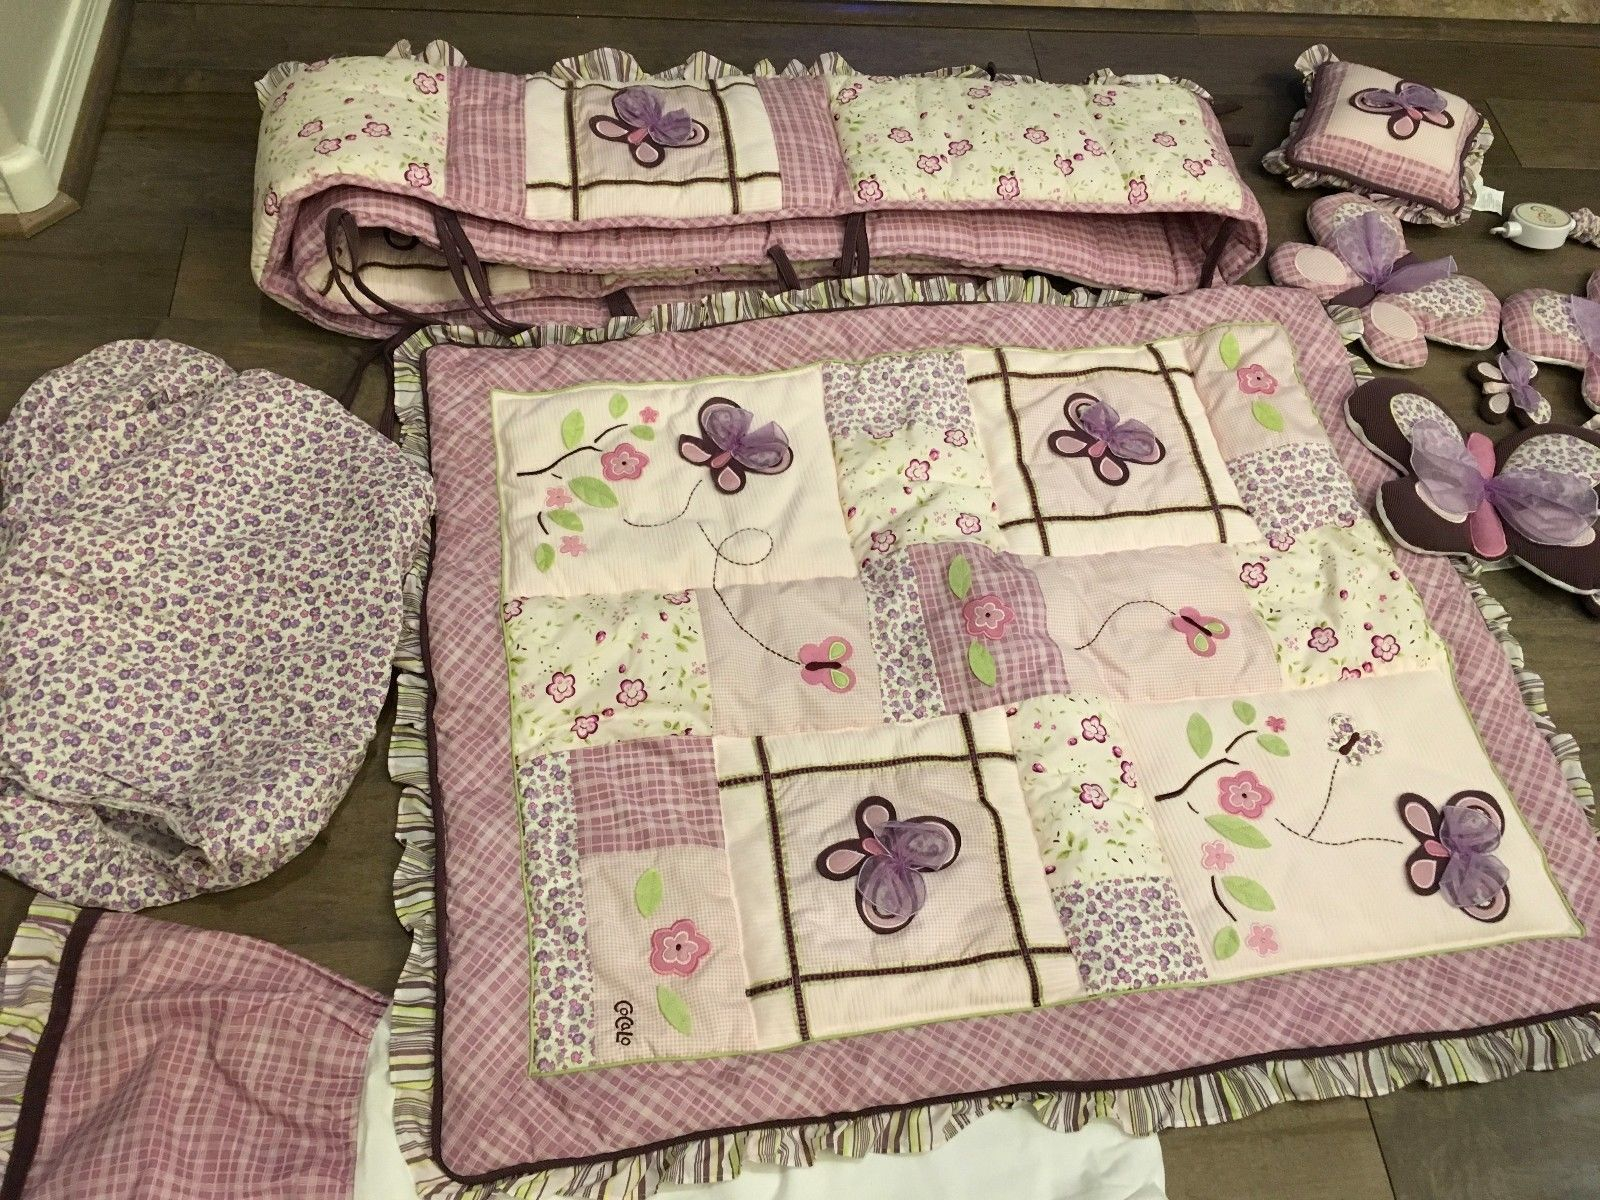 Cocalo Sugar Plum Purple Butterflies 10 Piece Baby Girl S Crib Bedding Set Baby Girl Crib Bedding Crib Bedding Sets Baby Girl Crib Bedding Sets